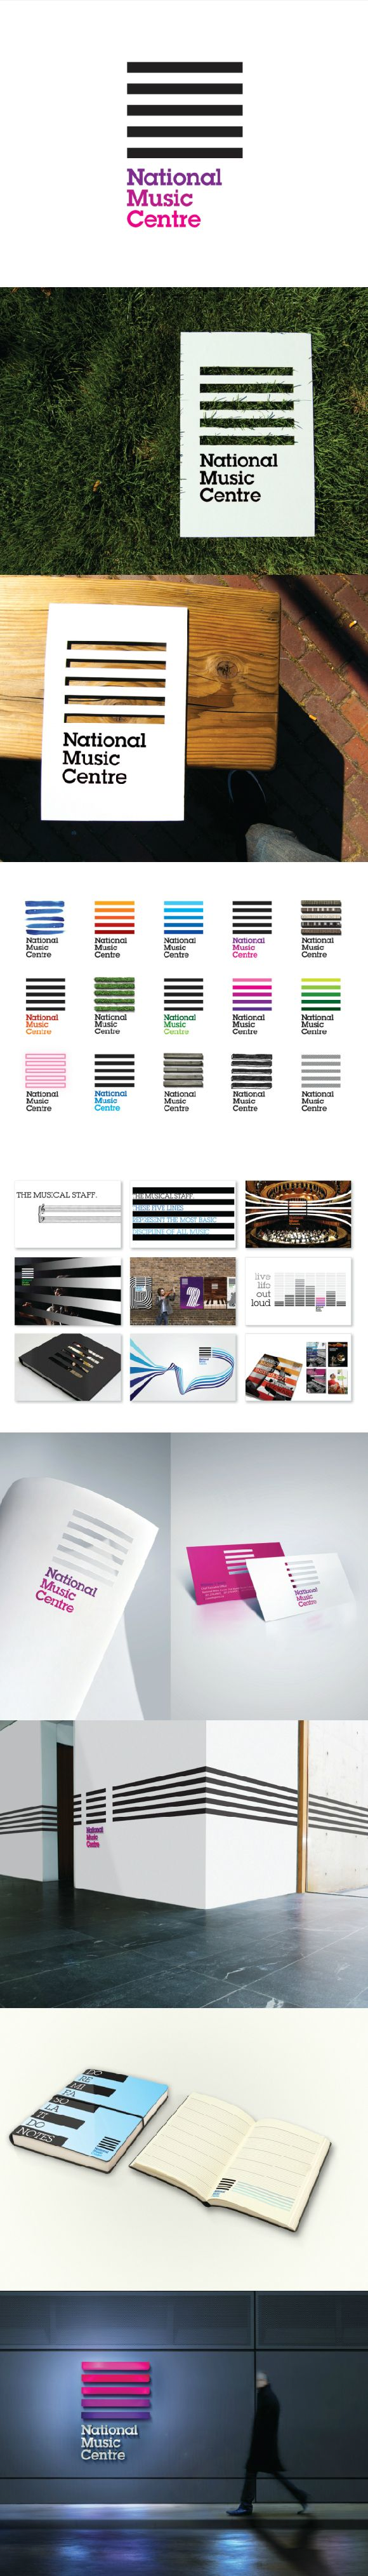 507 best Corporate Identity Branding images on Pinterest